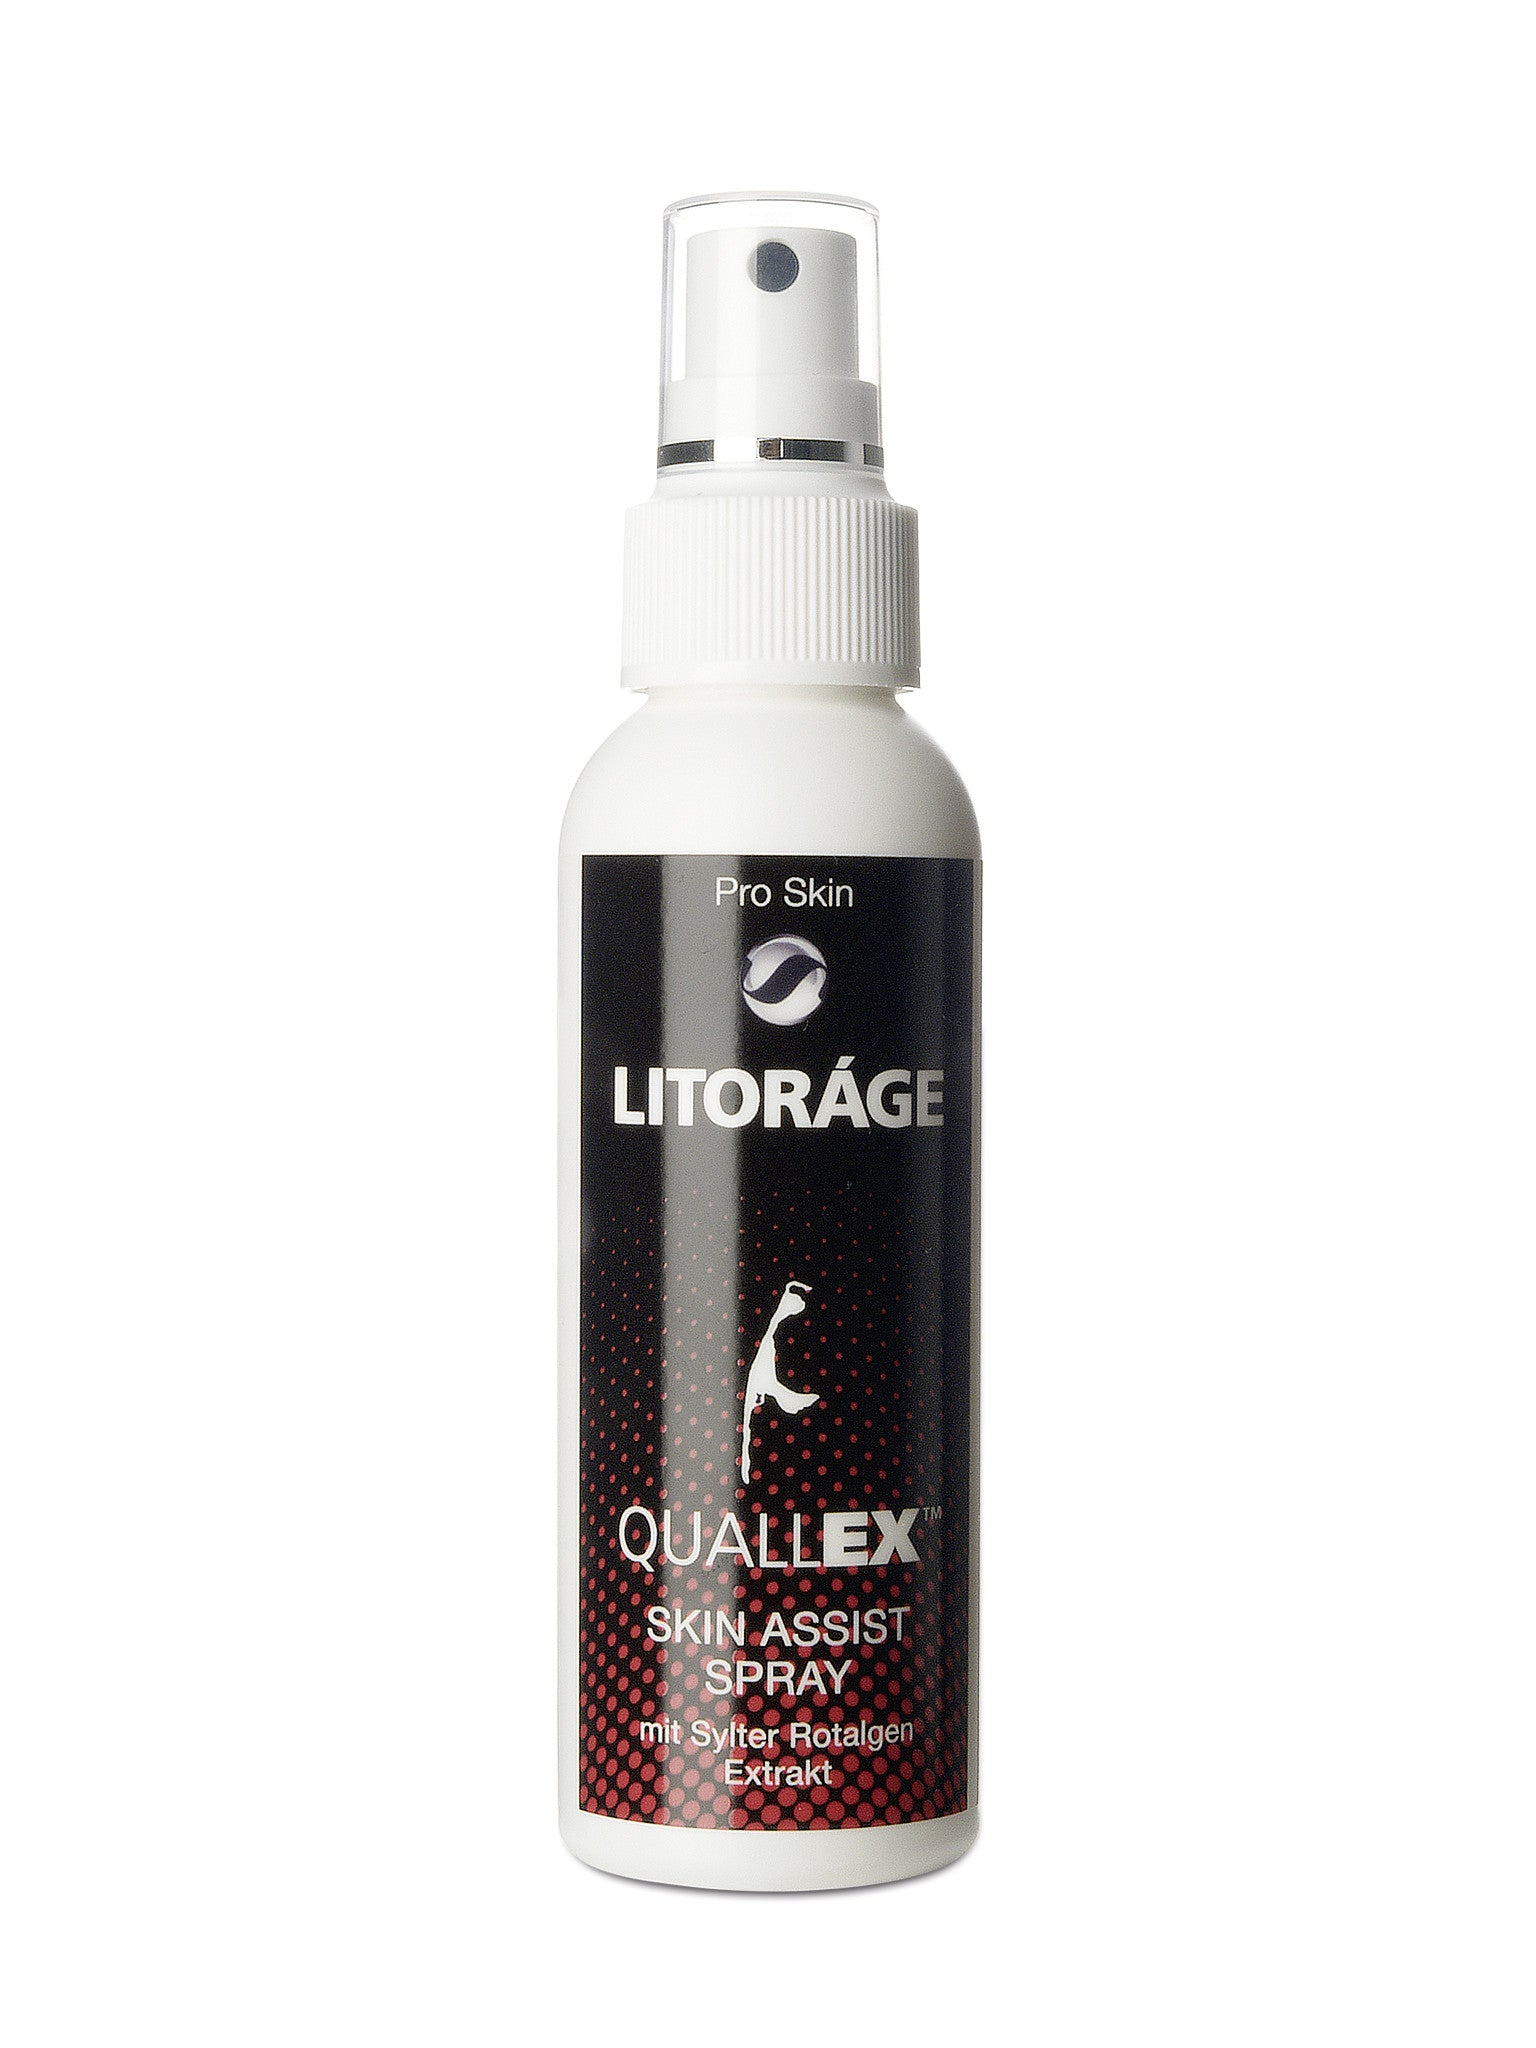 LITORÁGE QUALLEX, Skin Assist (Pump) Spray mit Sylter Rotalgen Extrakt, 100 ml